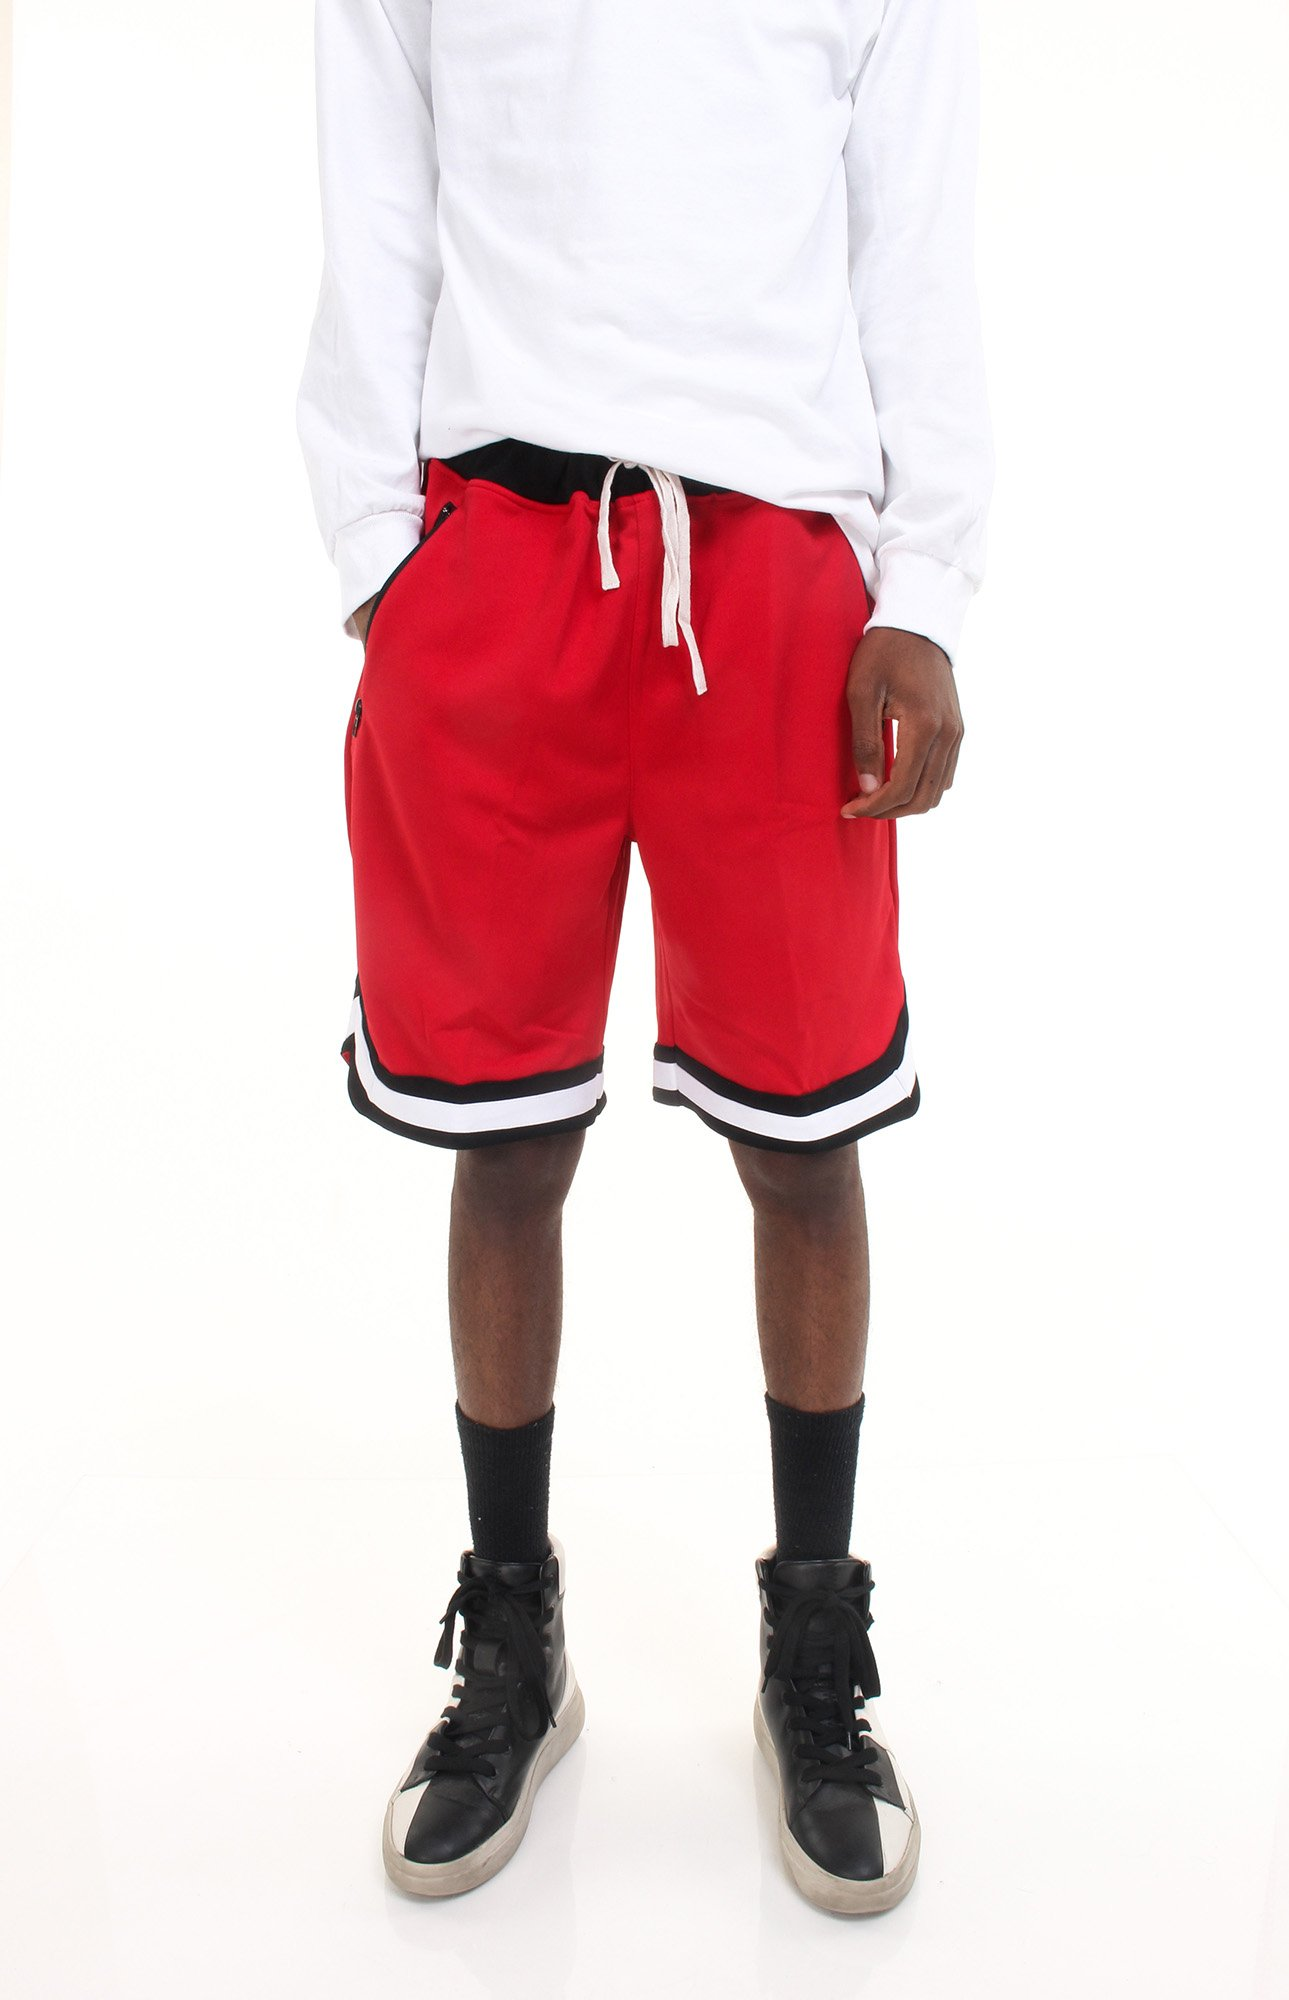 Skywear Retro Striped Shorts, Red/Black S